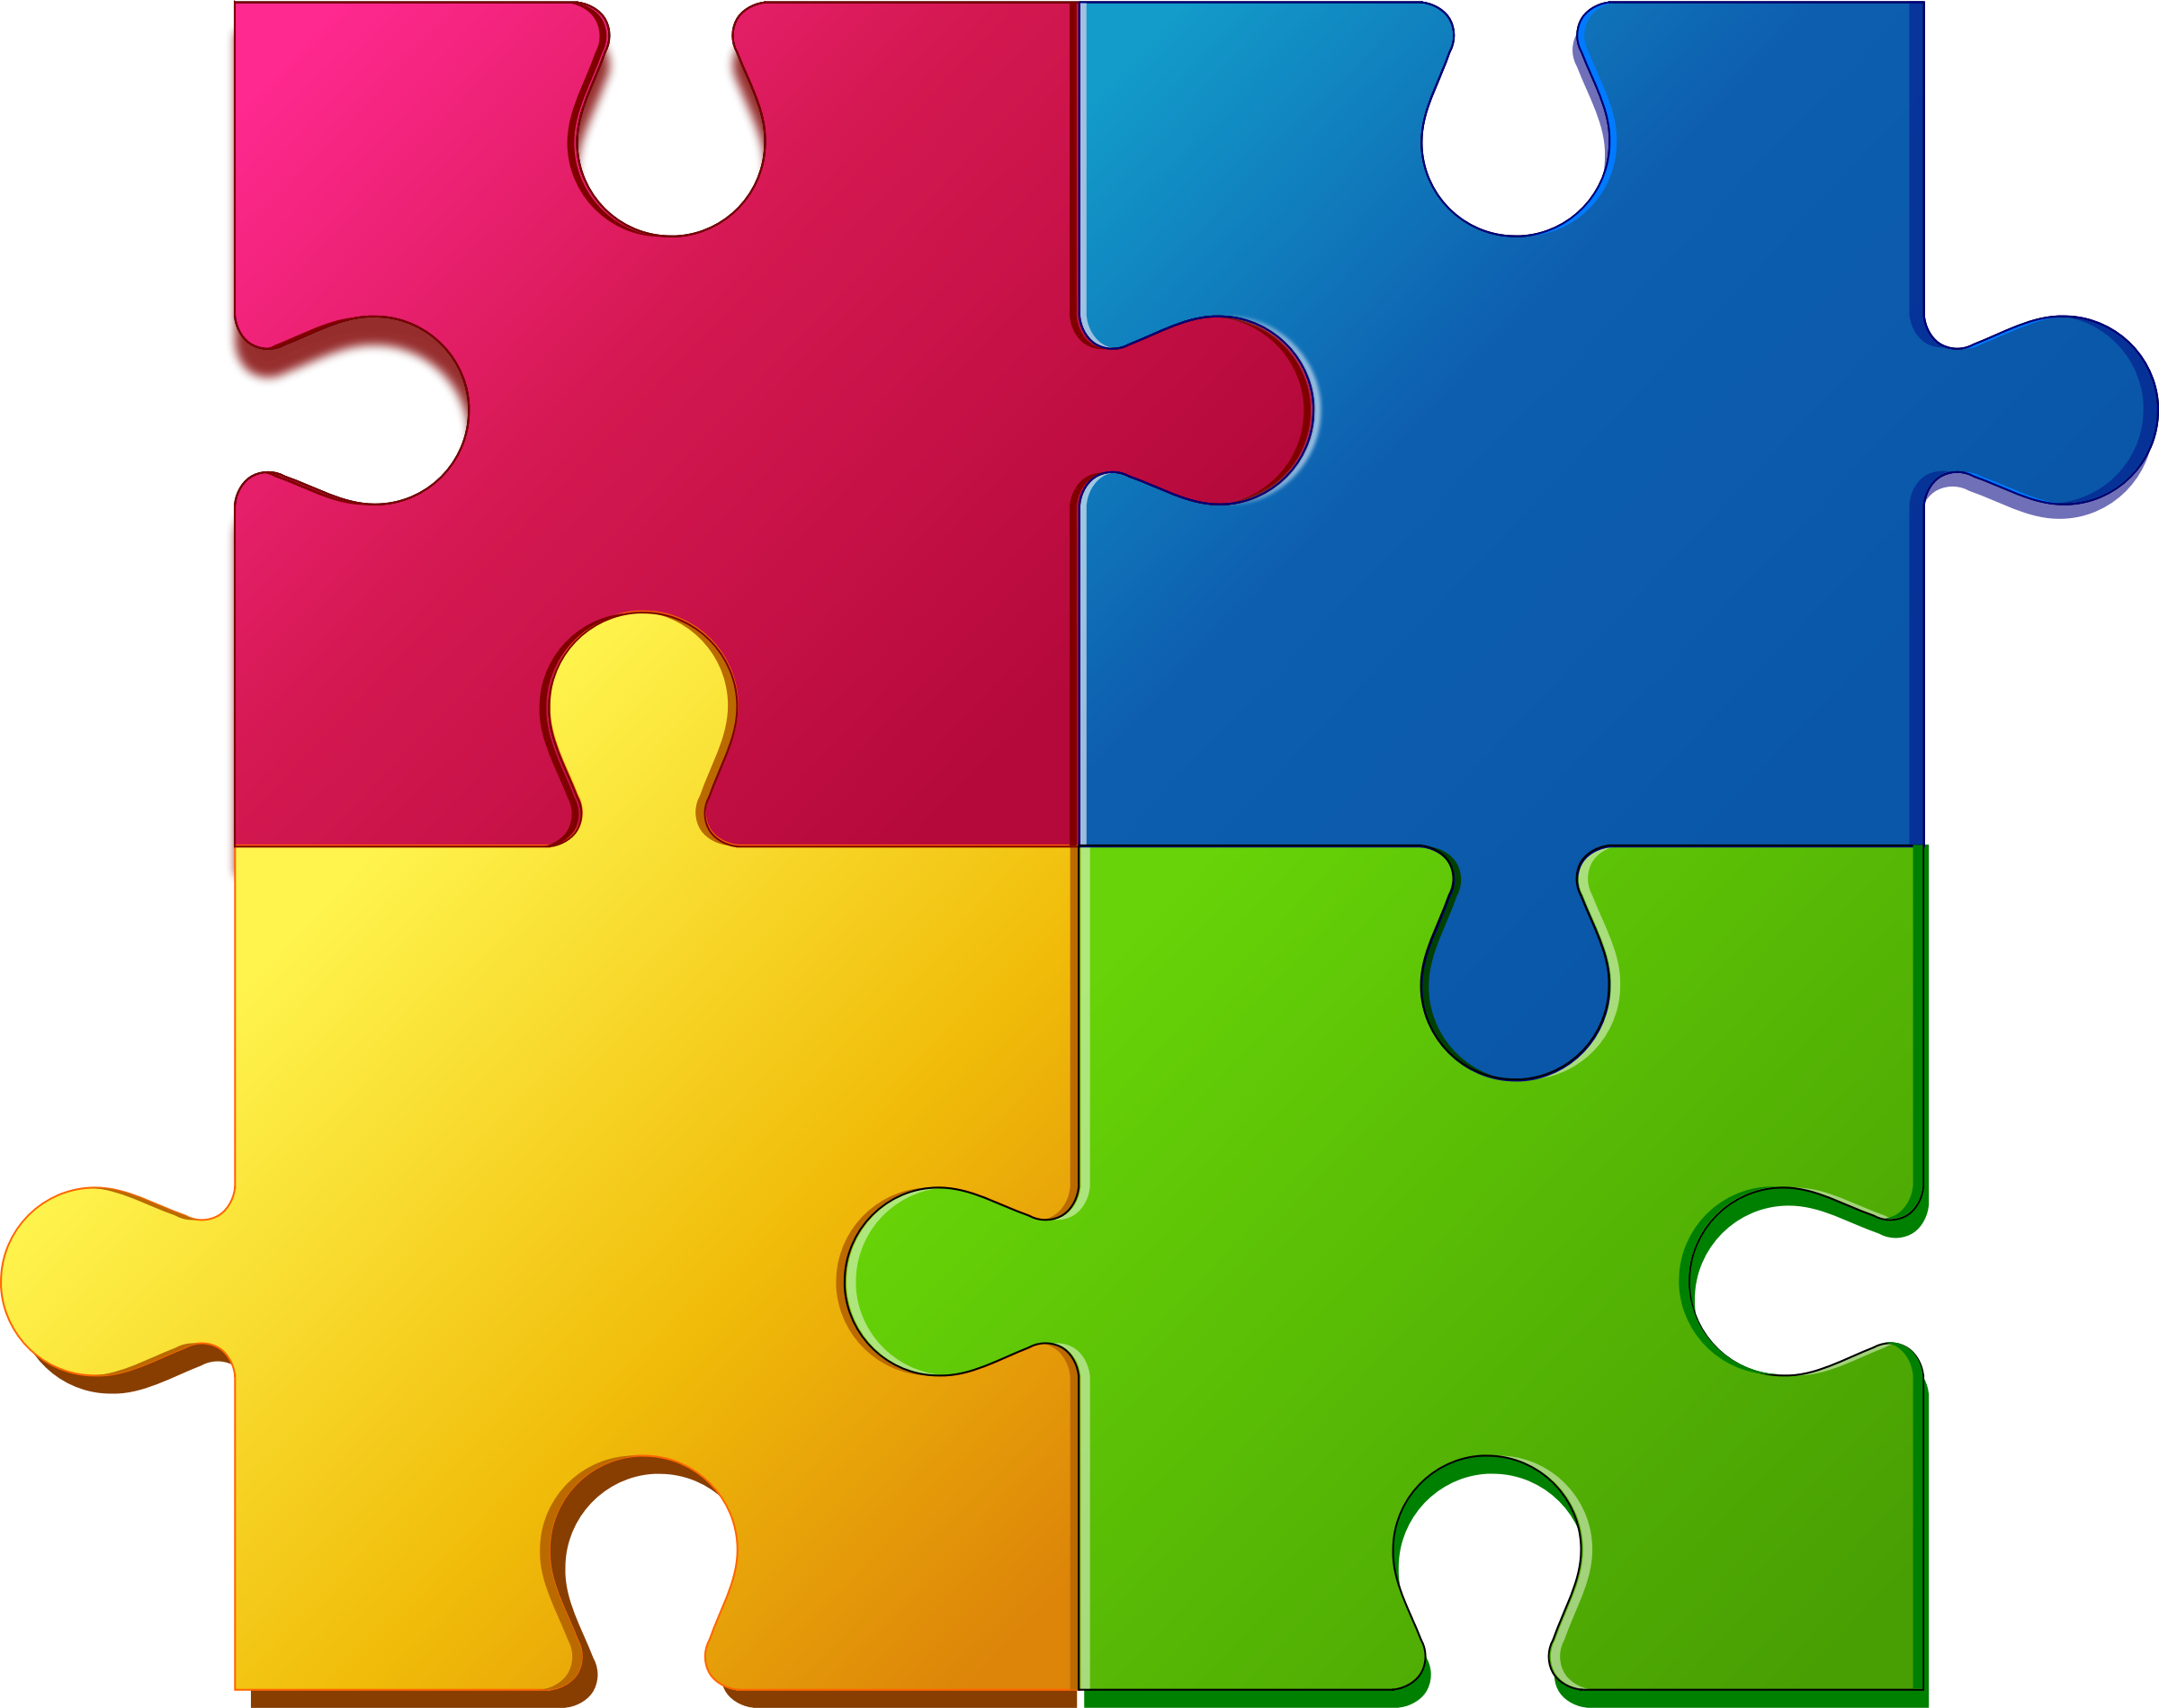 Jigsaw images clipart clip art royalty free stock Free PowerPoint Puzzle Cliparts, Download Free Clip Art, Free Clip ... clip art royalty free stock